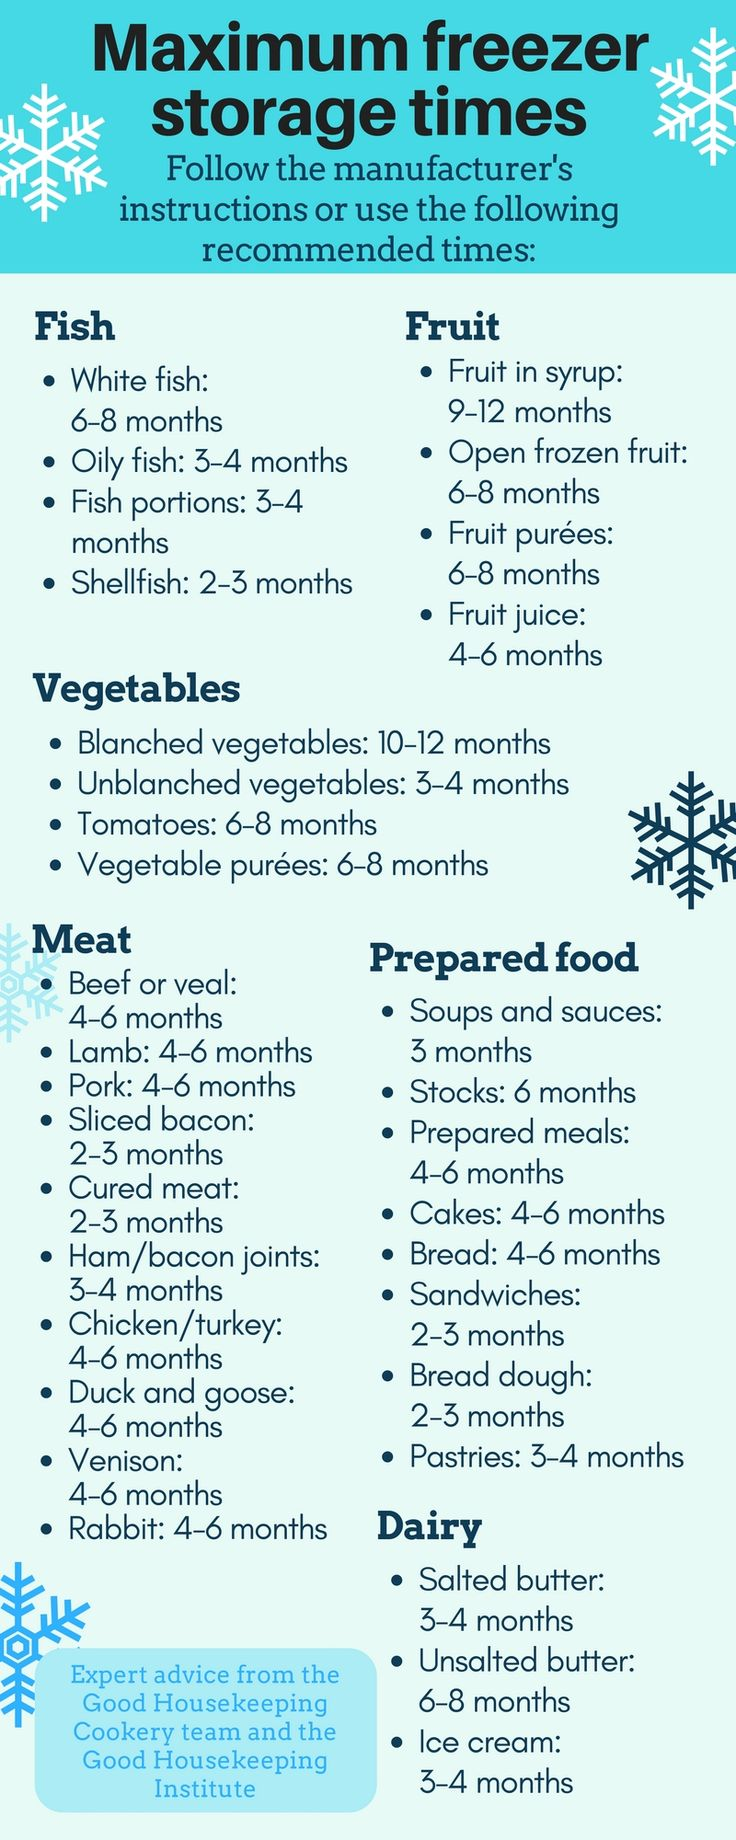 Food storage guide: how long to store frozen food in the freezer